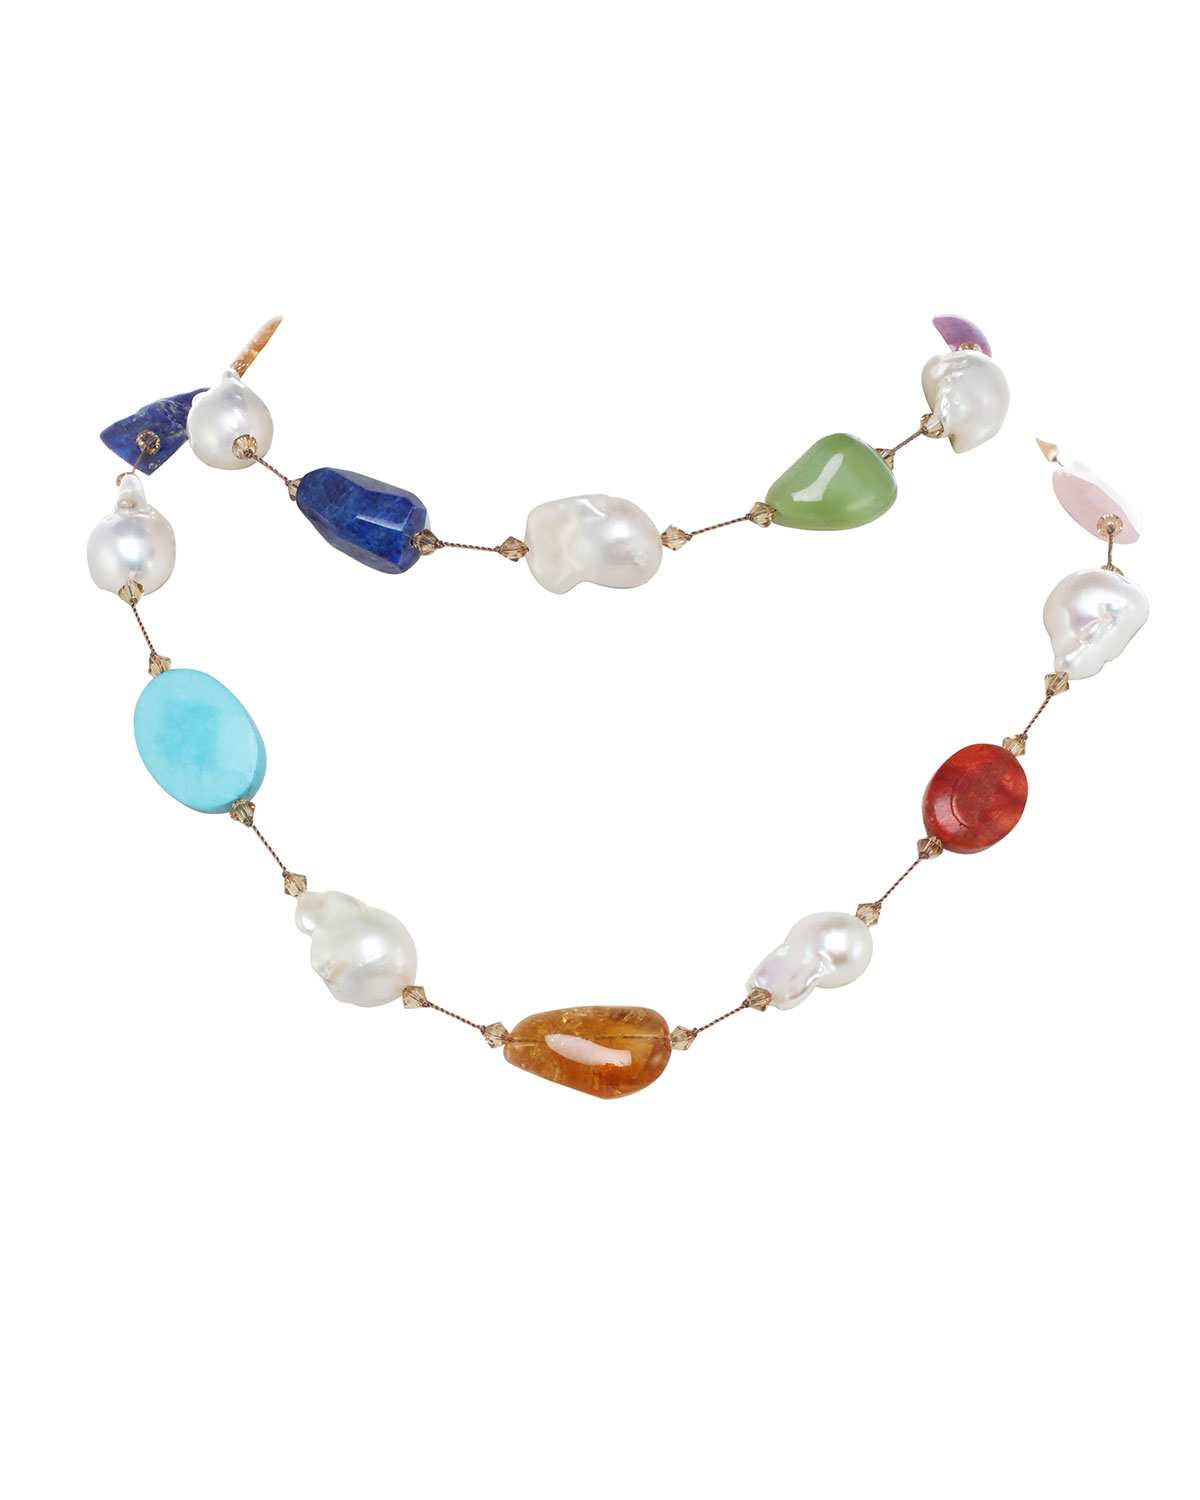 Large Multi-Stone and Baroque Pearl Necklace with Swarovski Crystal and Sterling Silver Toggle